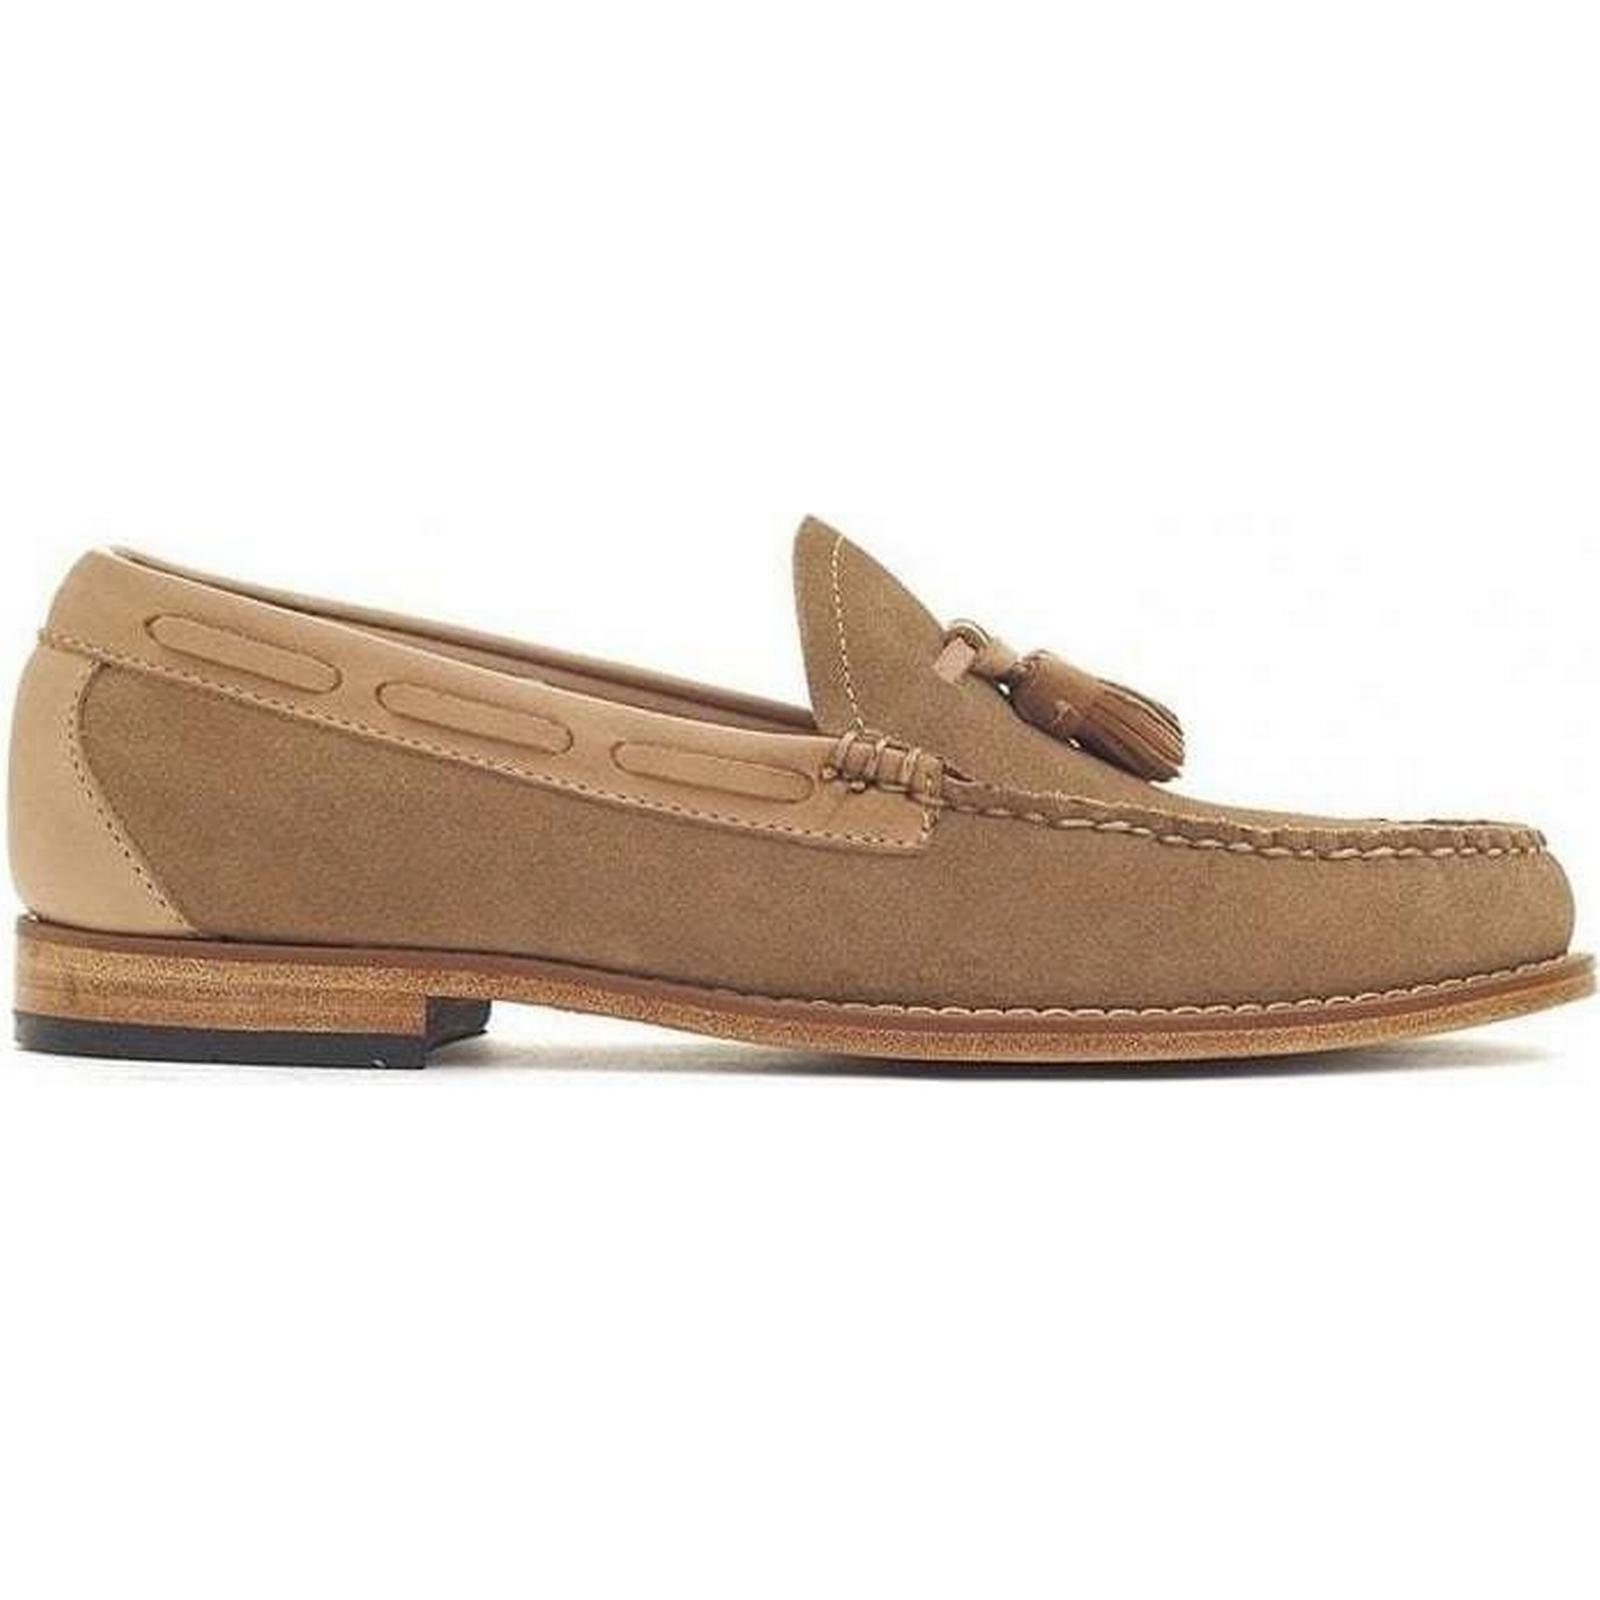 Bass Weejuns Loafers Larkin Reverso Suede Tassle Loafers Weejuns Colour: Earth, Size: dd8307